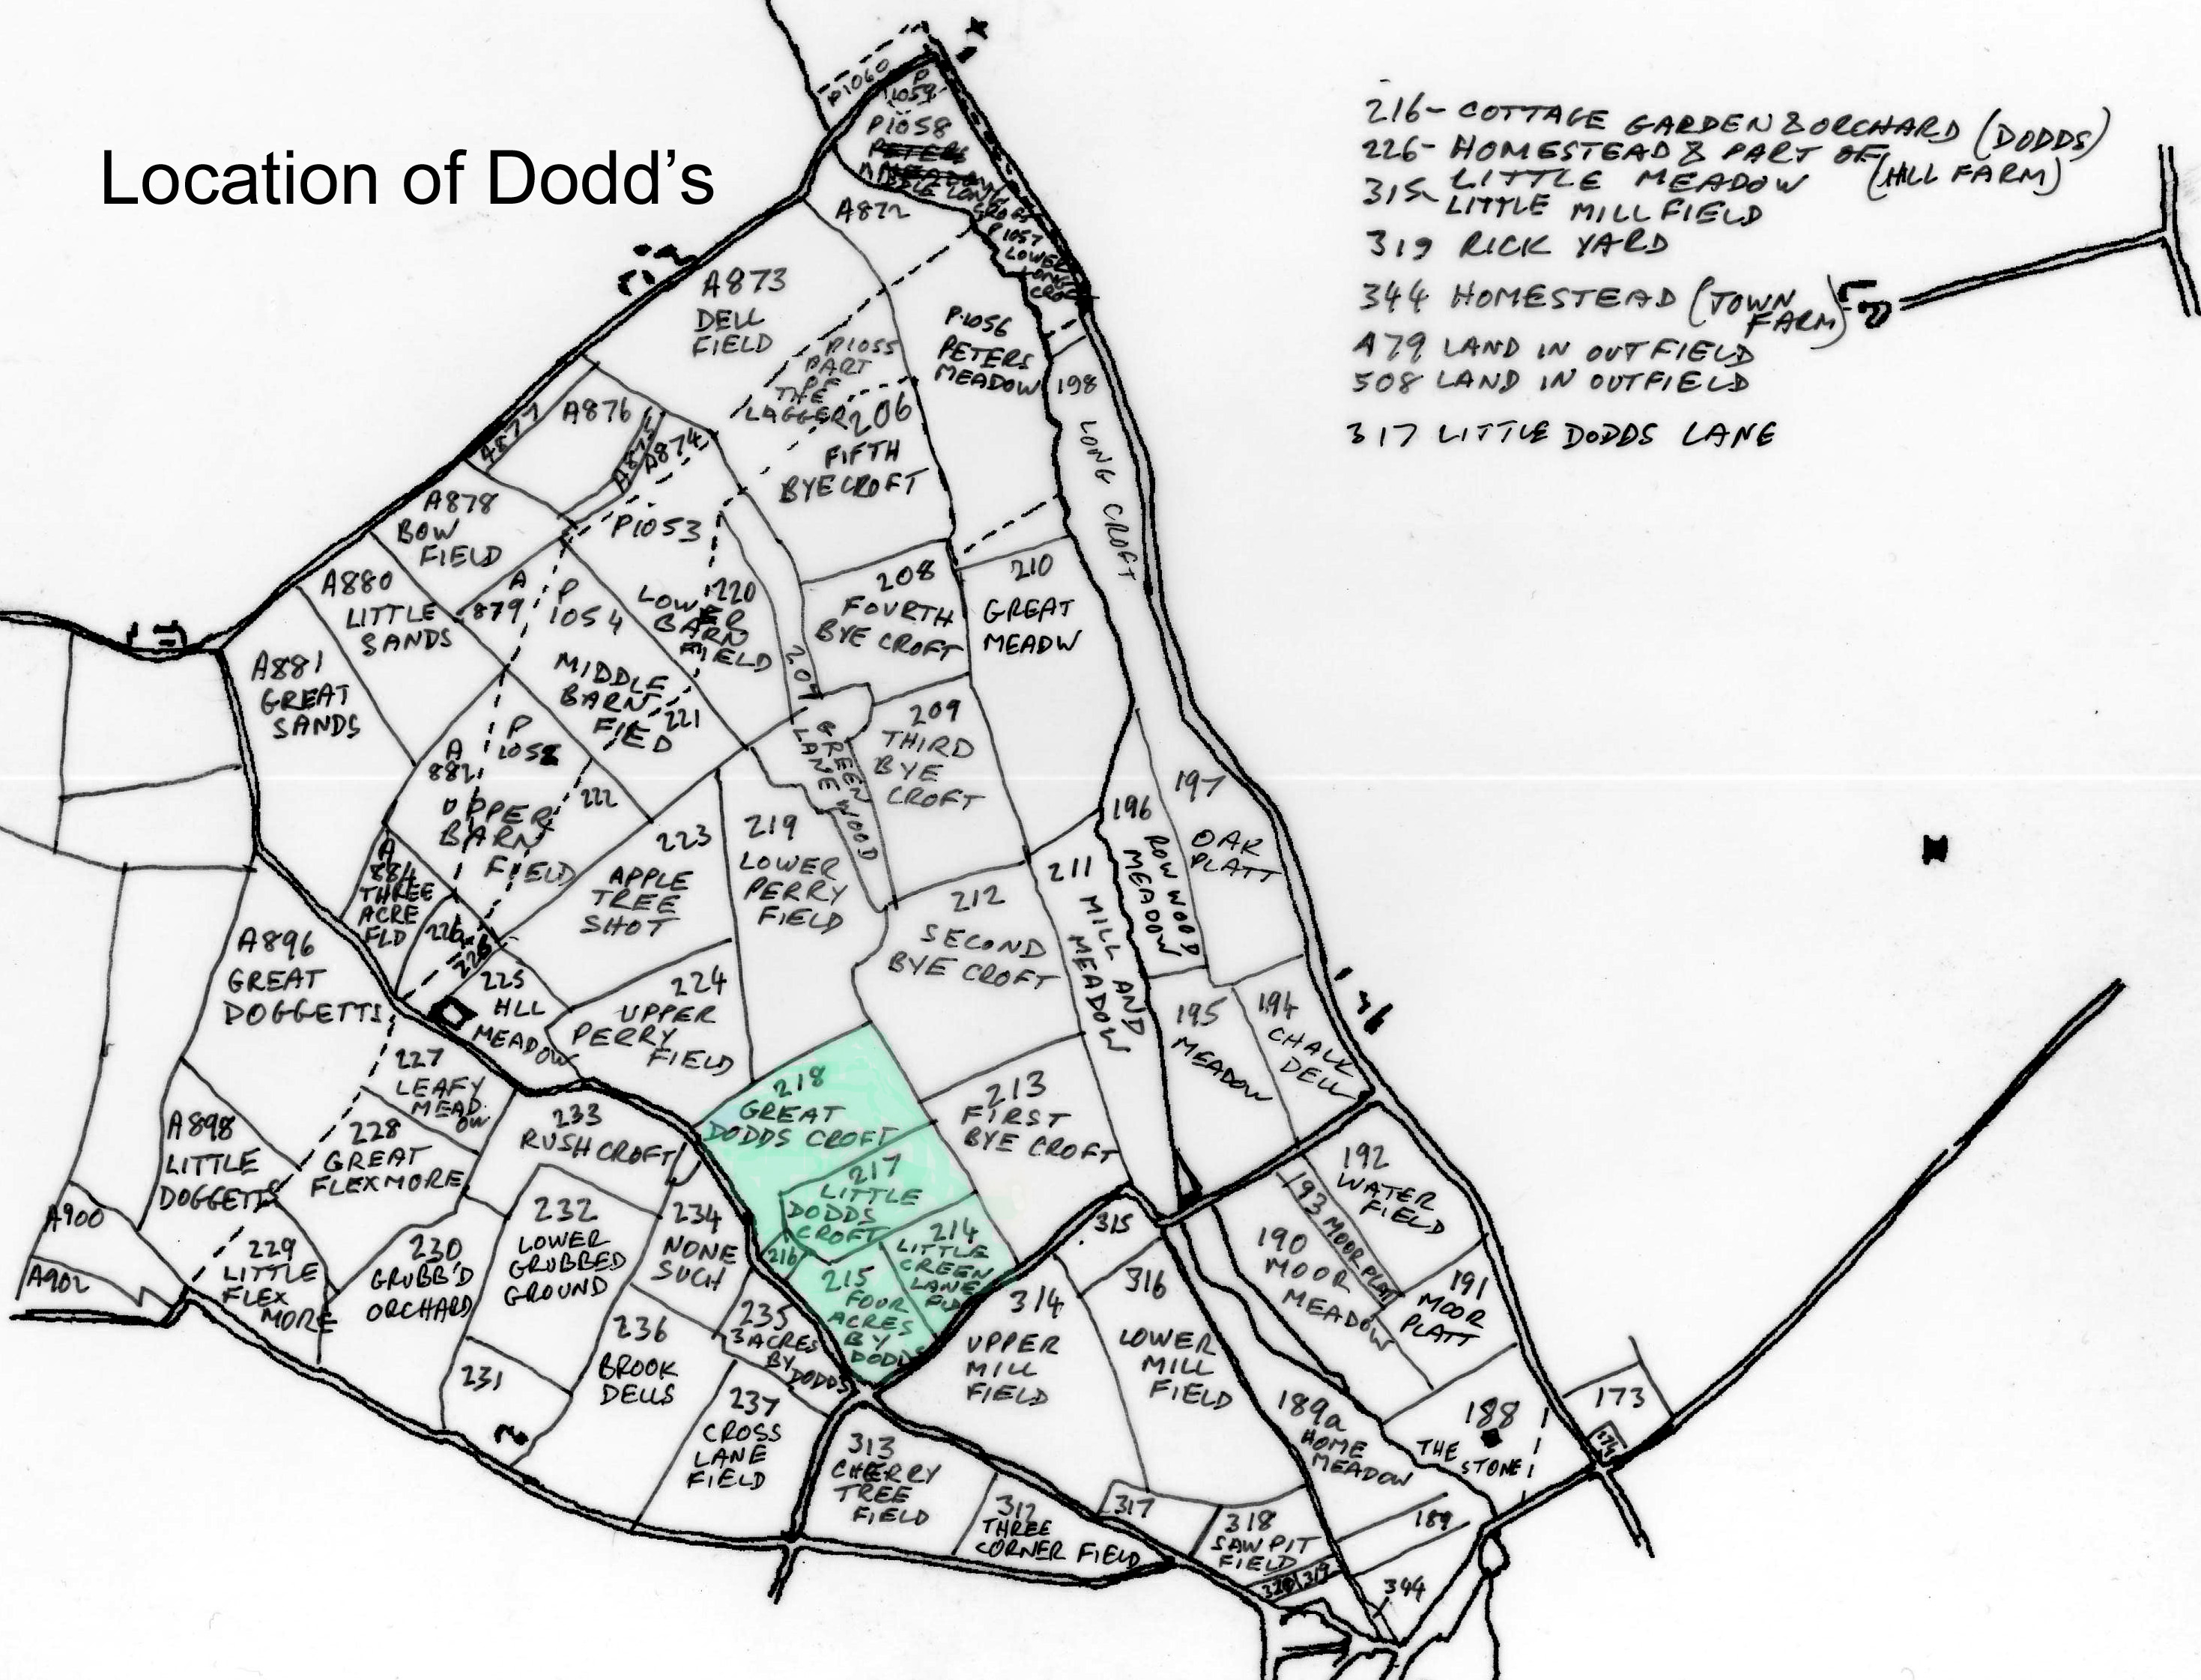 Position of the fields of Dodds